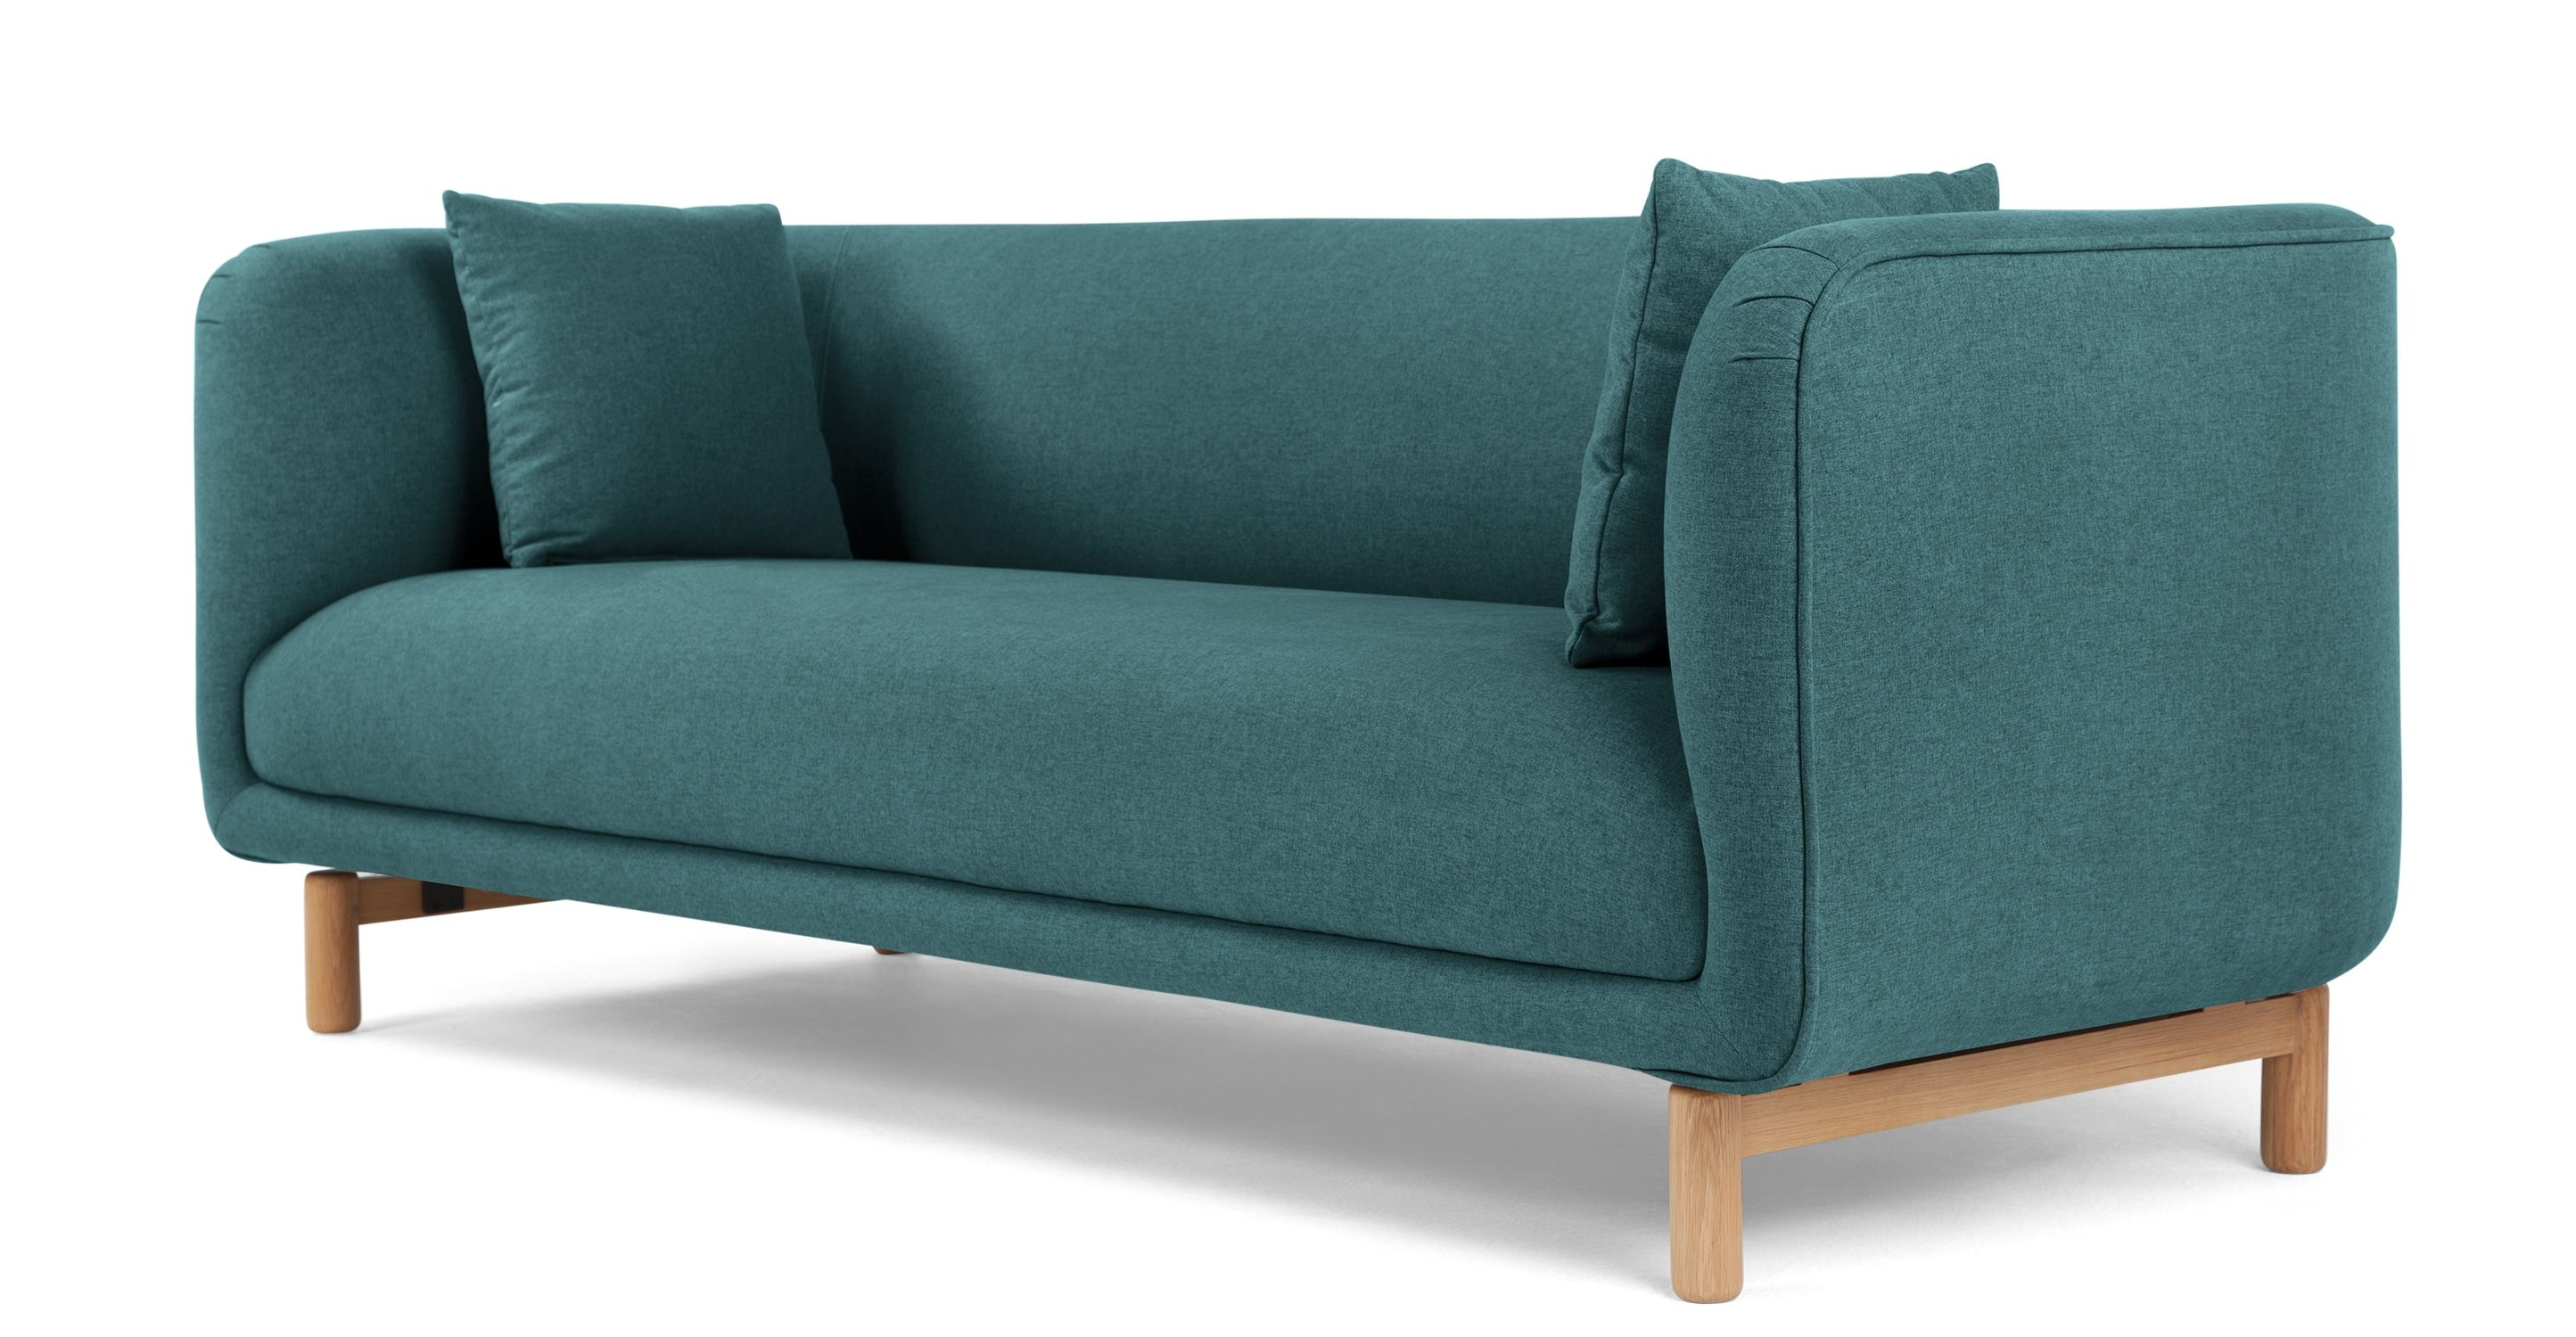 Tribeca 3 Seater Sofa Mineral Blue from Made Express delivery